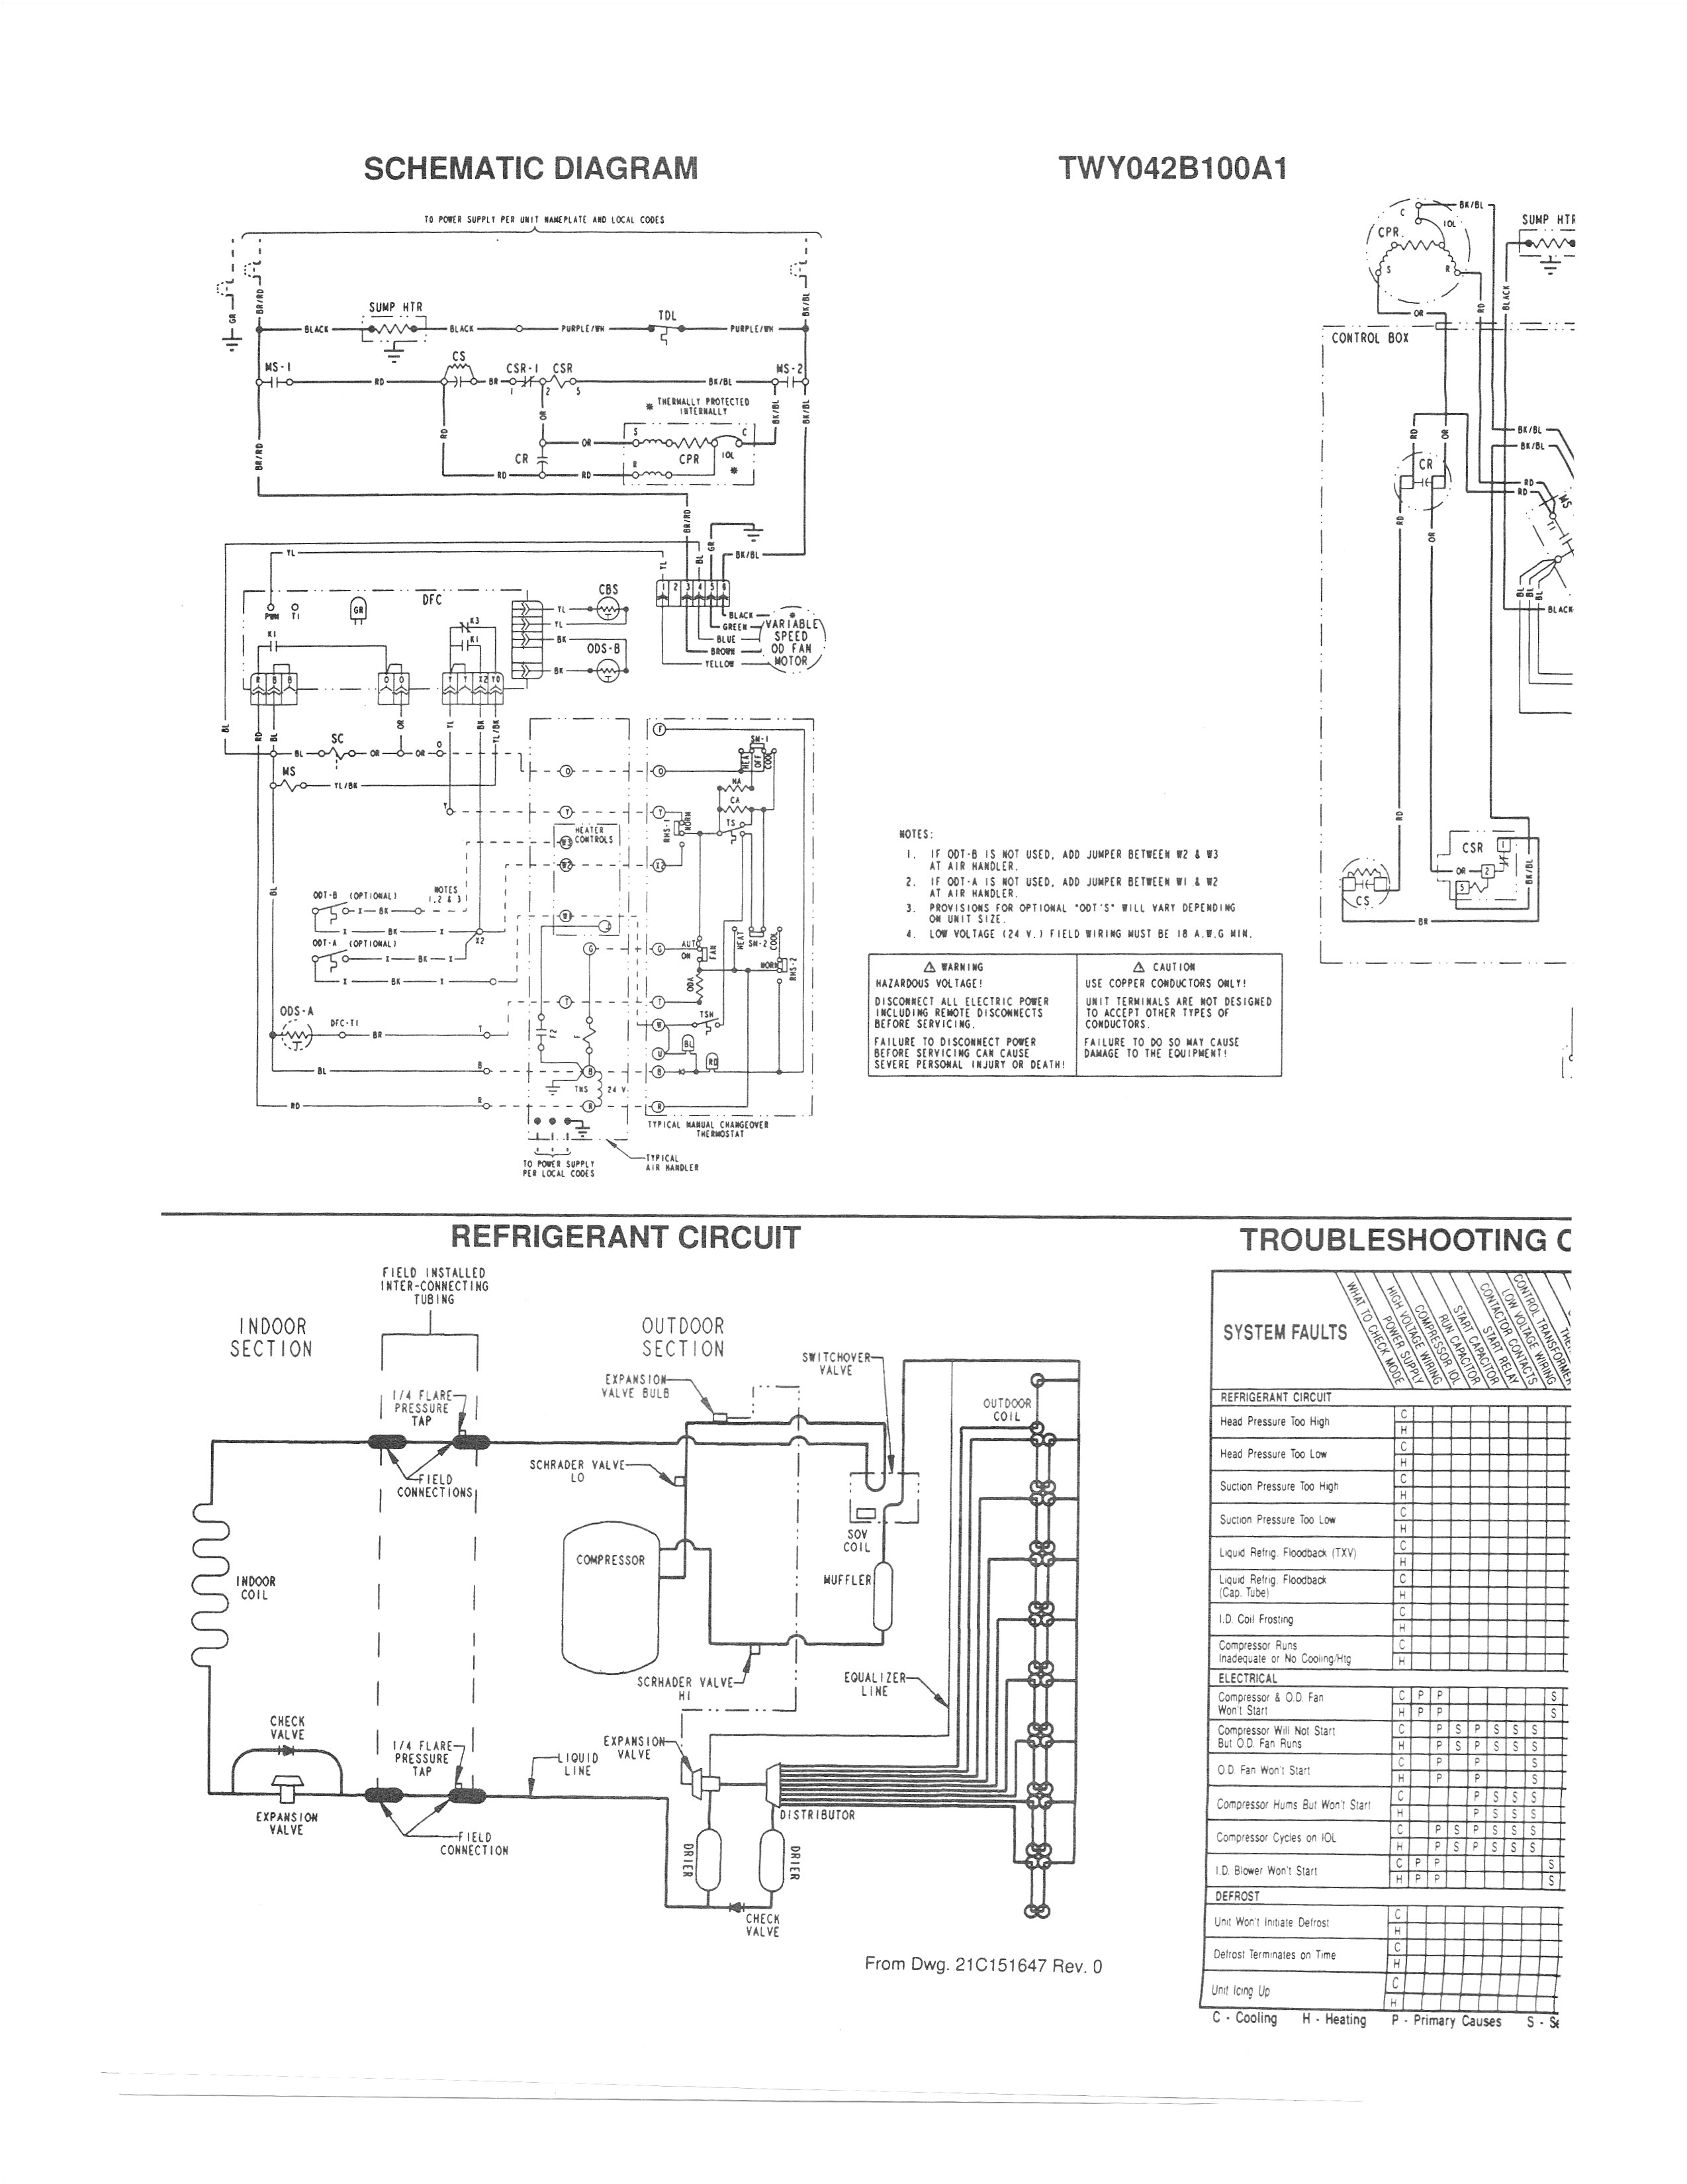 trane wiring diagrams 2307 5588 premium wiring diagram blog trane wiring diagrams 2307 5588